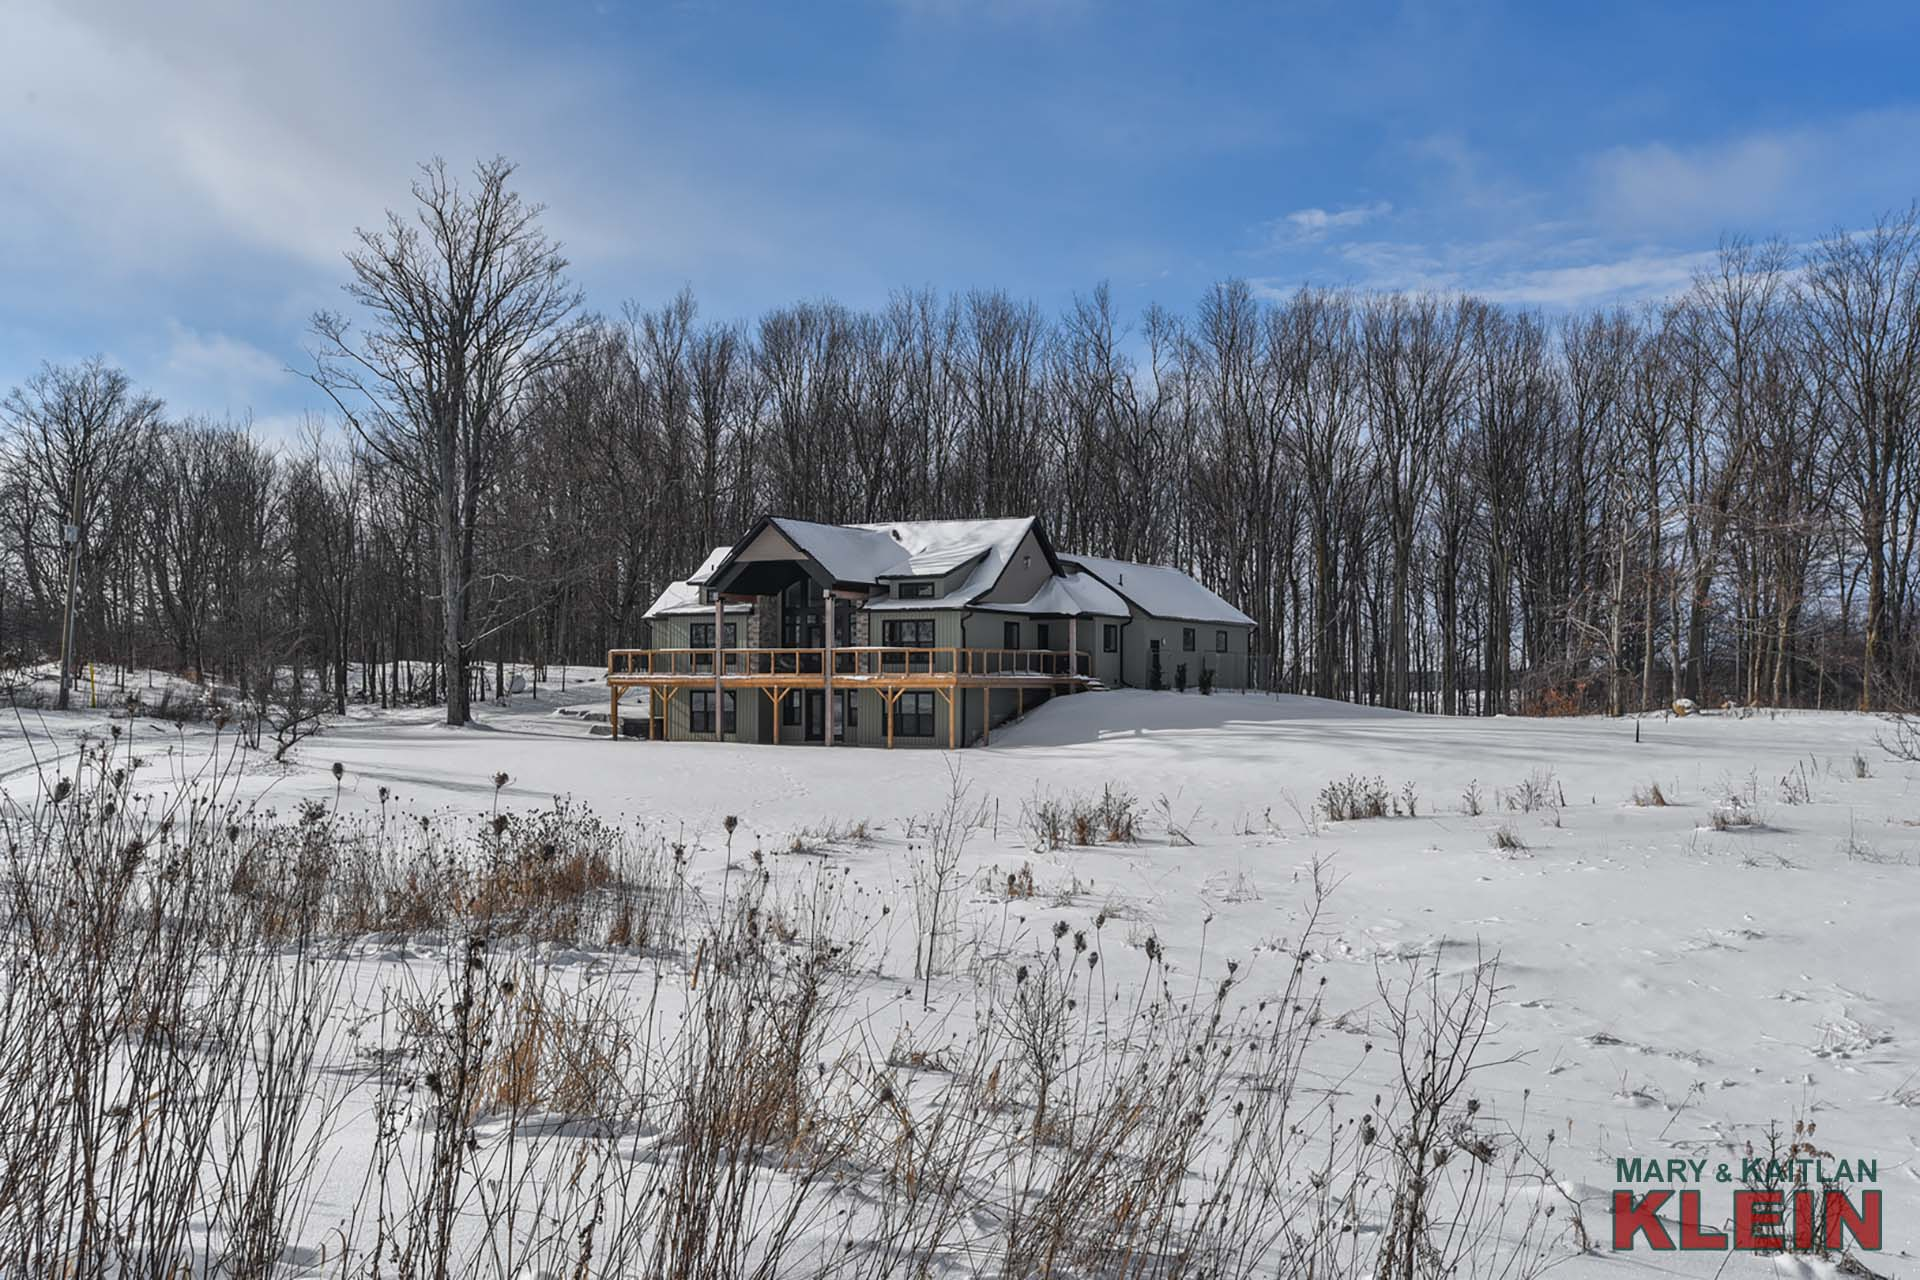 3-Bedroom Bungalow on 24.58 Acres w/ Pond